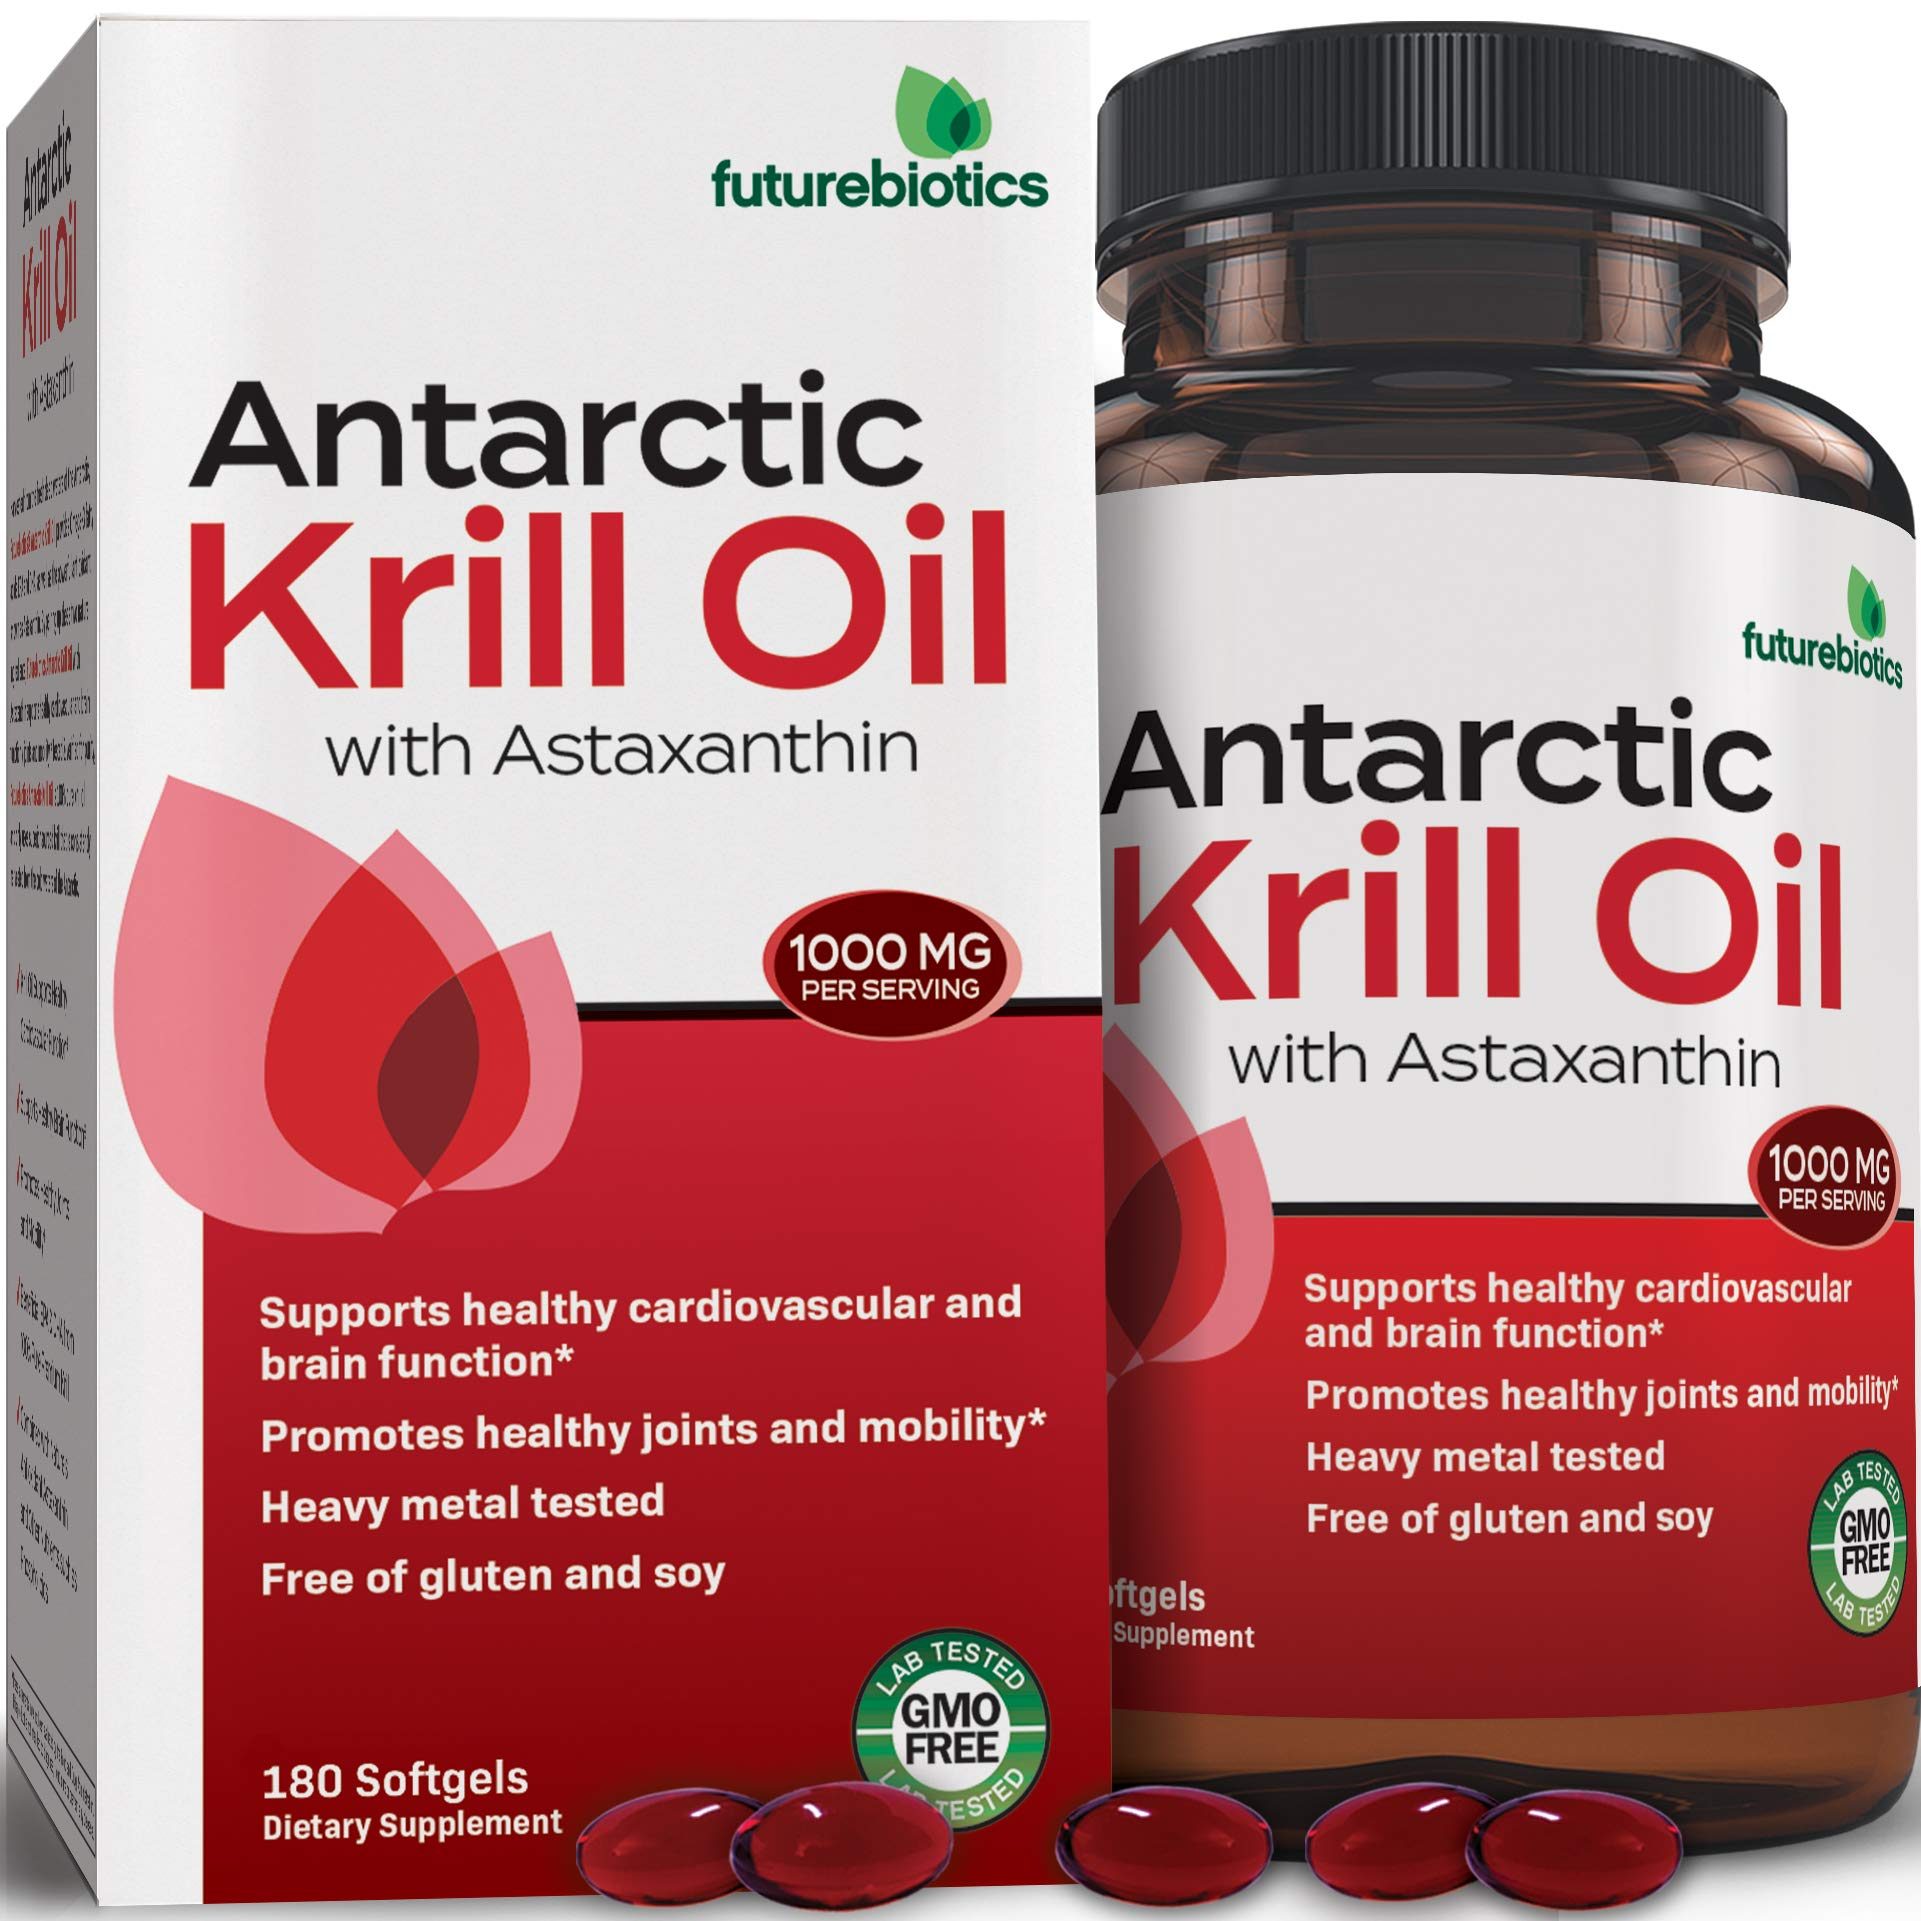 Futurebiotics Antarctic Krill Oil with Omega-3s EPA, DHA, Astaxanthin and Phospholipids - 100% Pure Premium Krill Oil Heavy Metal Tested, Non GMO Gluten Free Soy Free - 180 Softgels